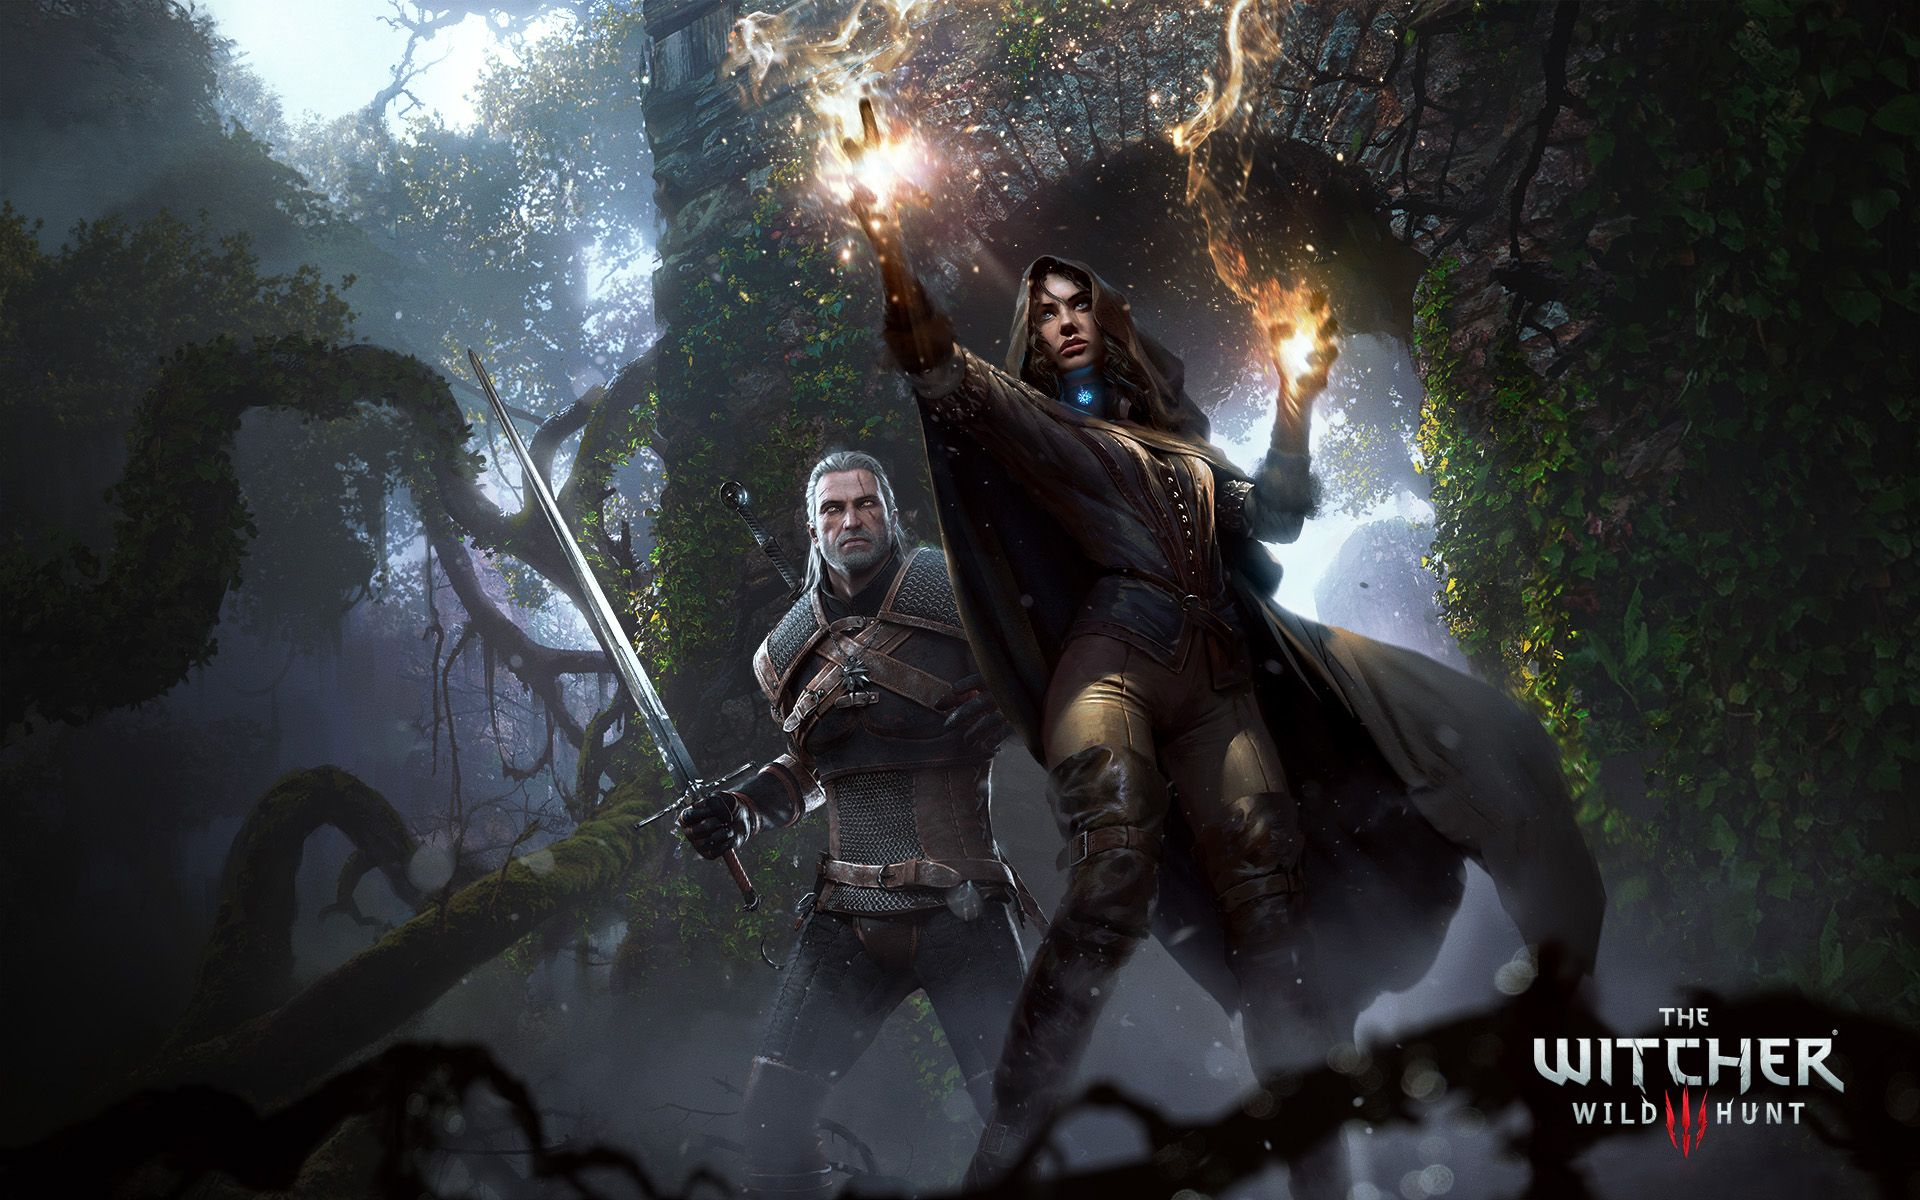 The Witcher 3: Wild Hunt delayed again